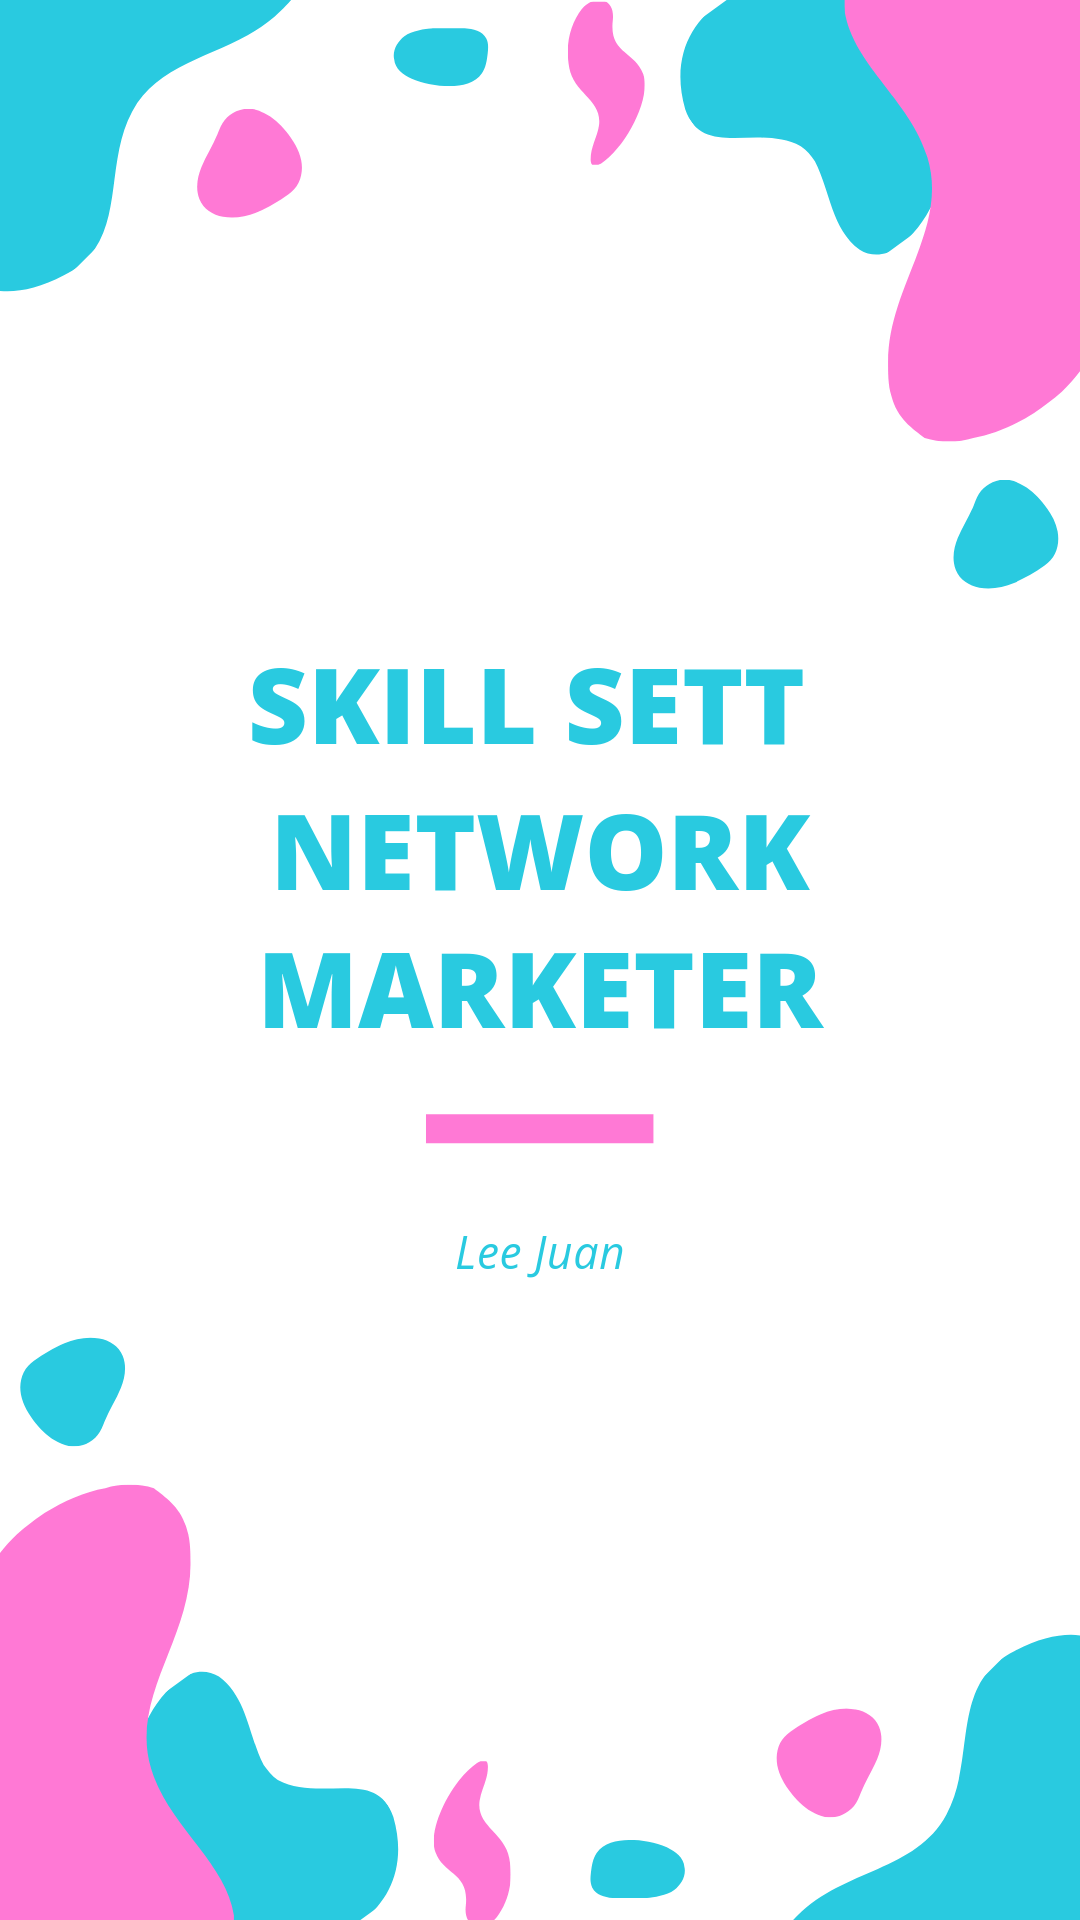 Skill Sett Network Marketer